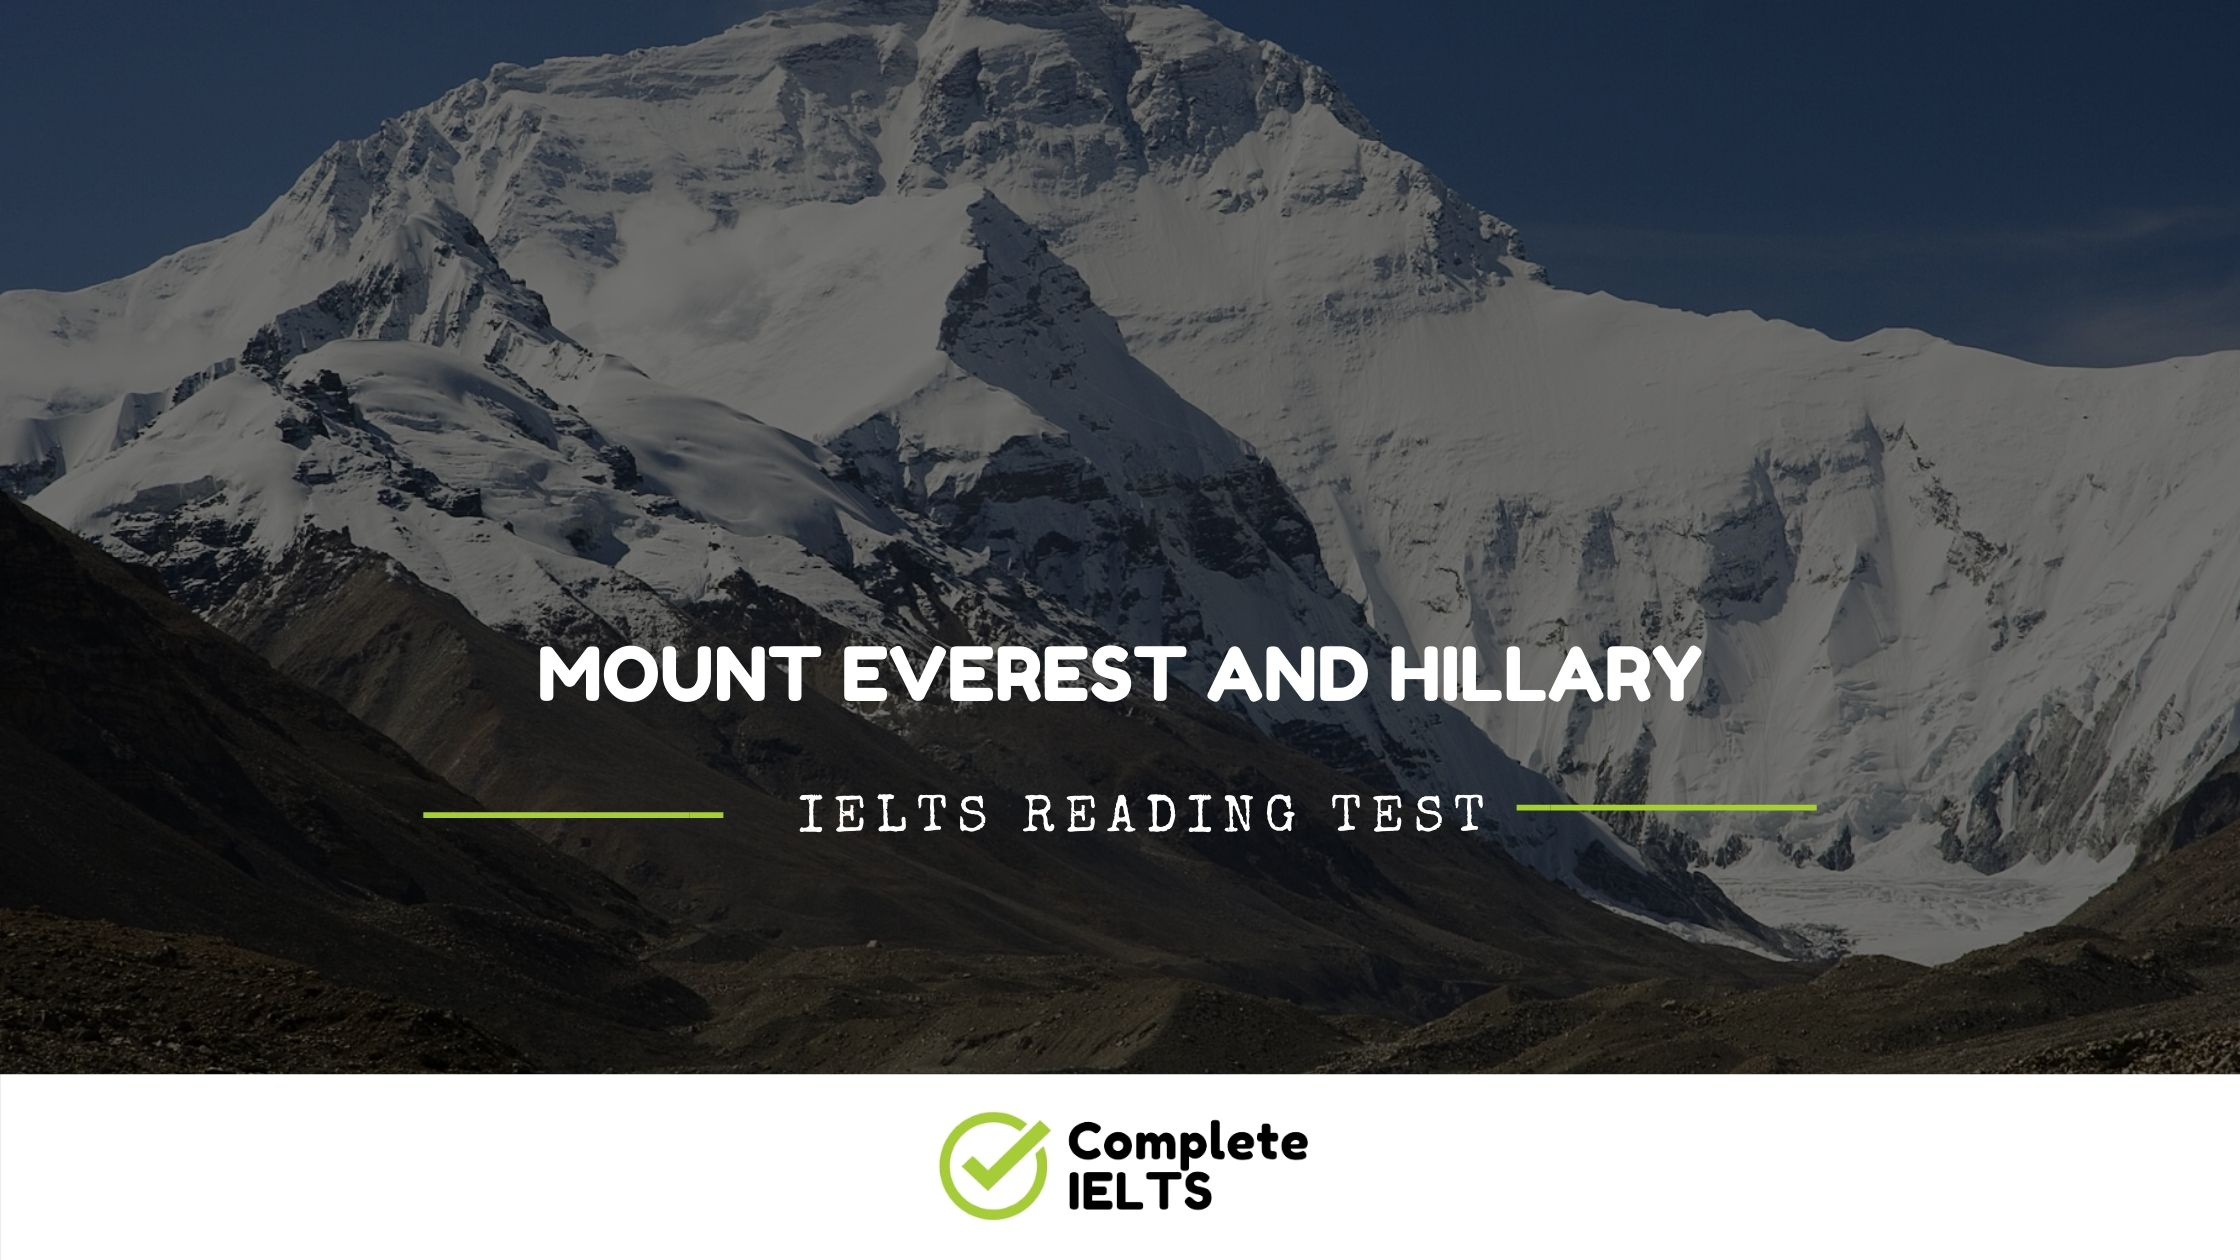 Mount Everest And Hillary